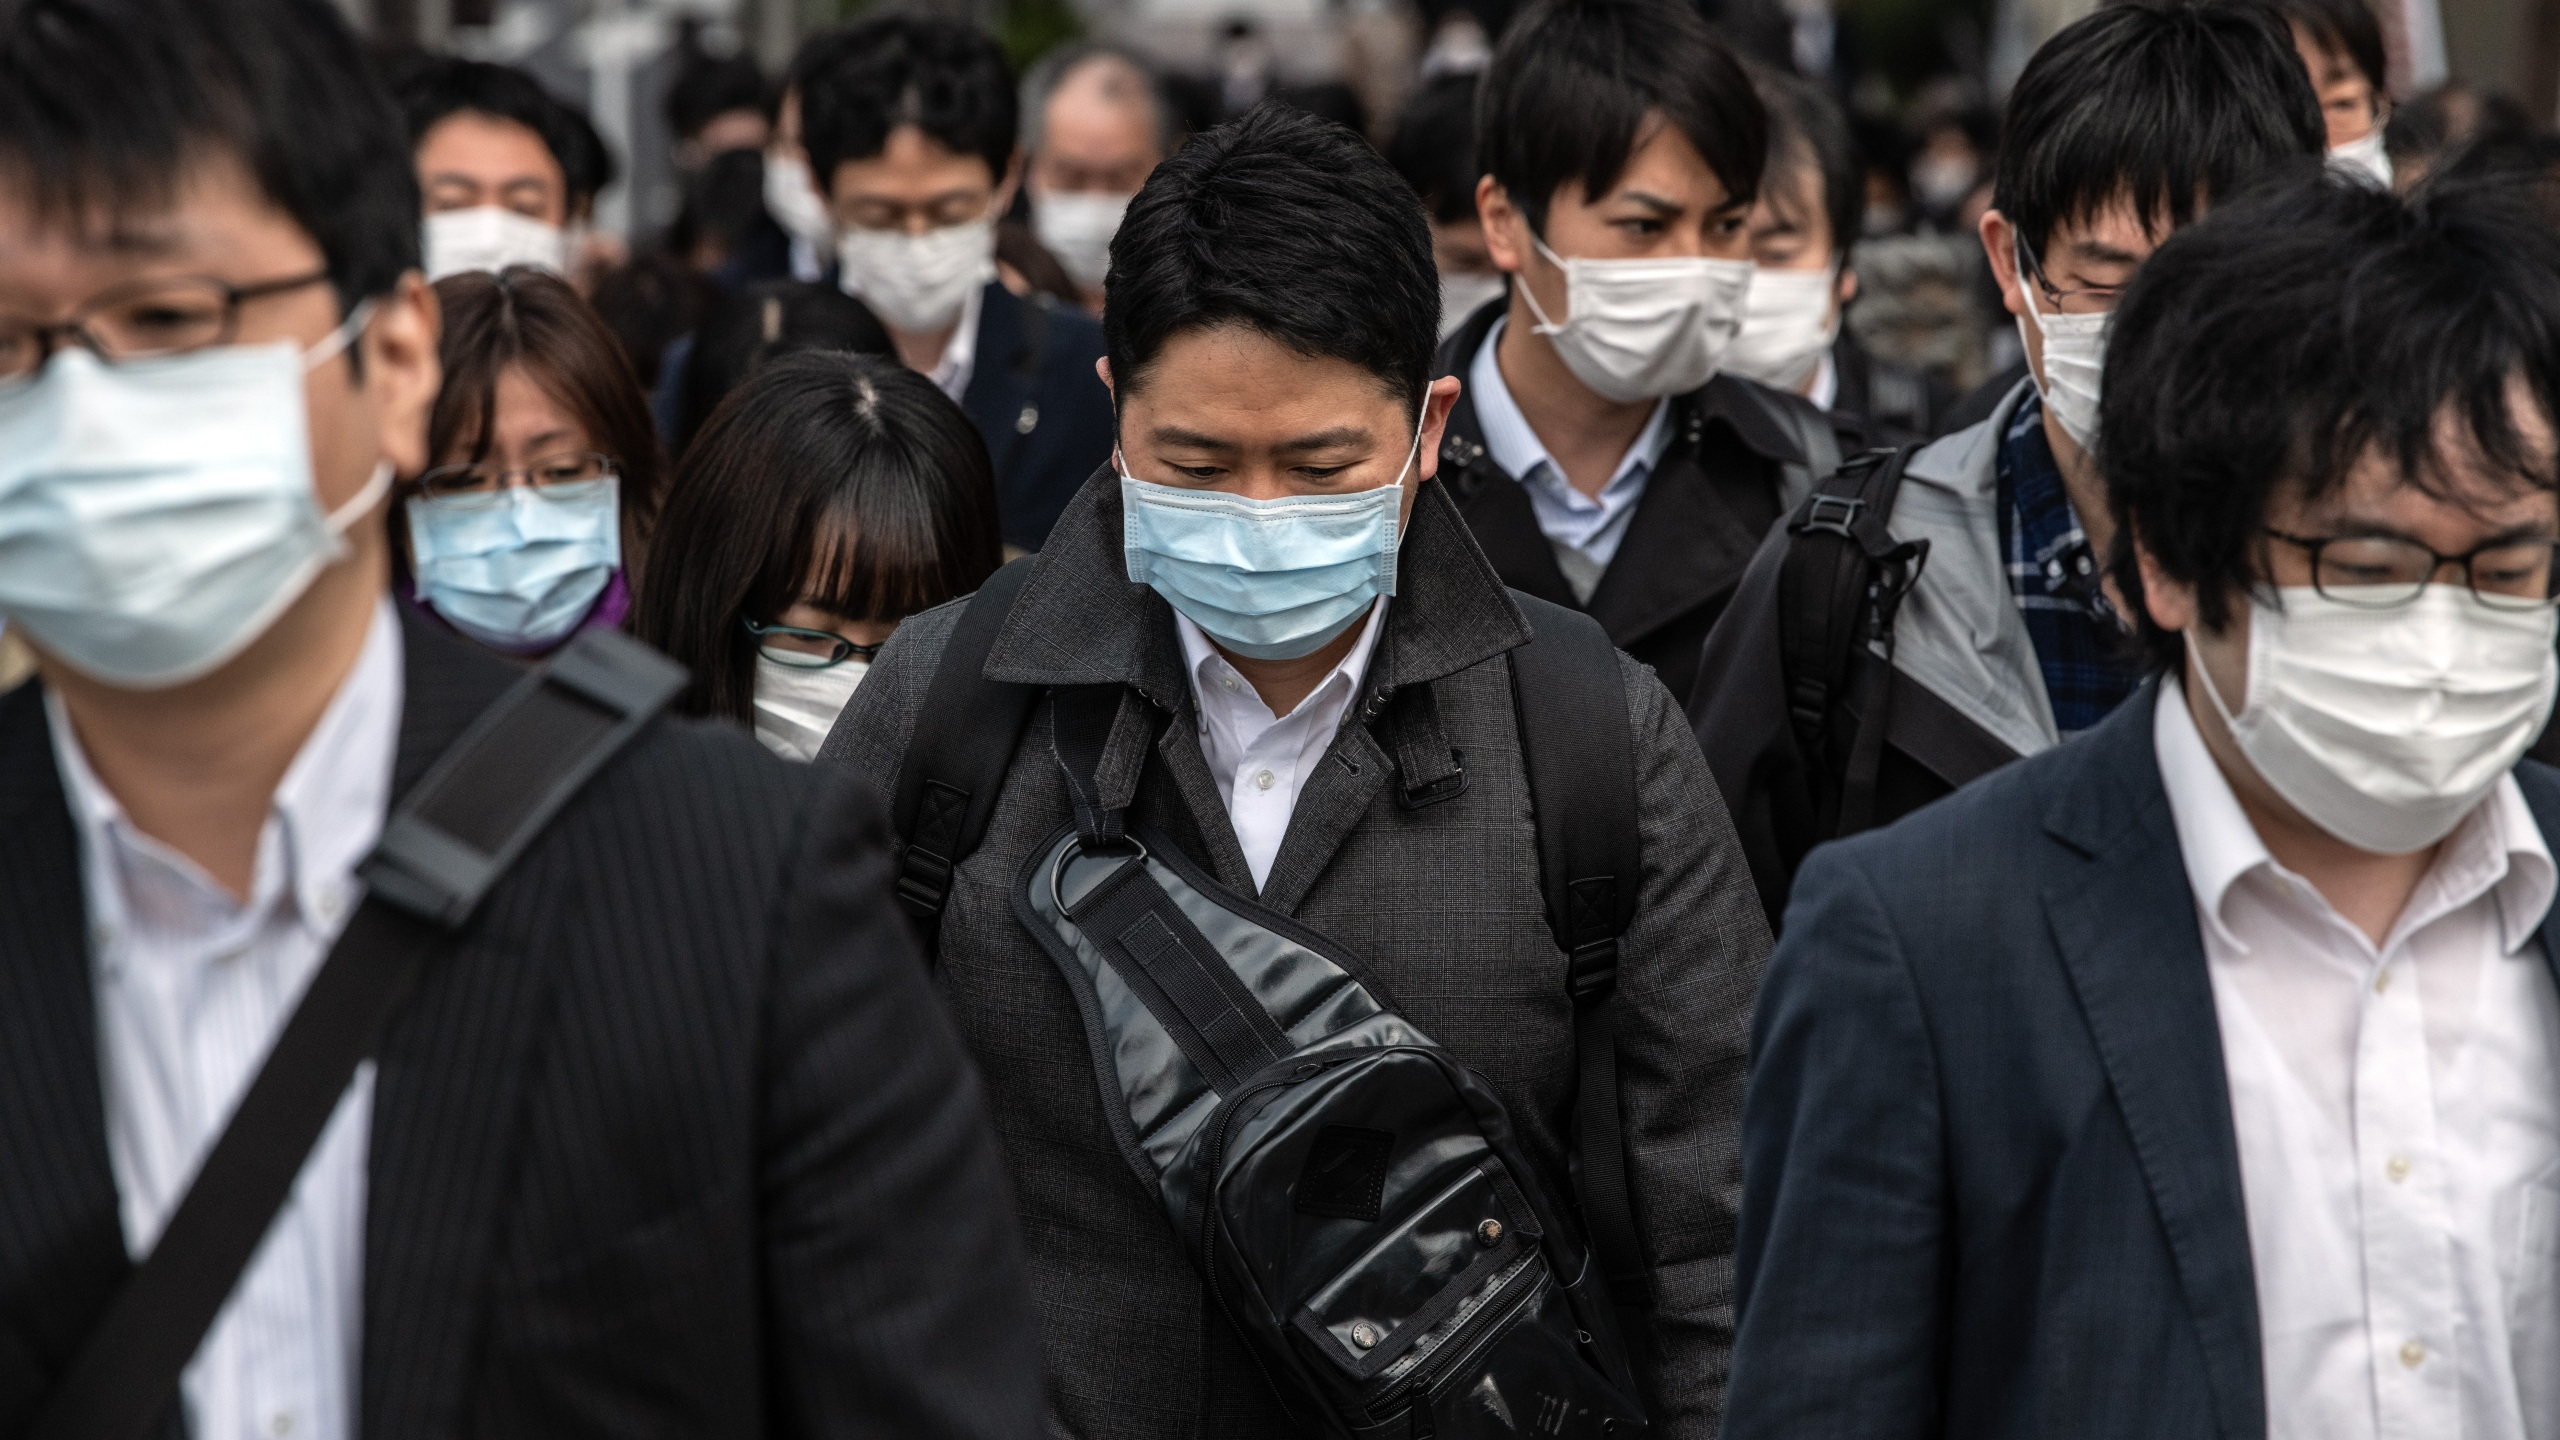 Commuters wearing face masks walk to work the day before a state of emergency is expected to be imposed on April 7, 2020, in Tokyo, Japan. (Carl Court/Getty Images)